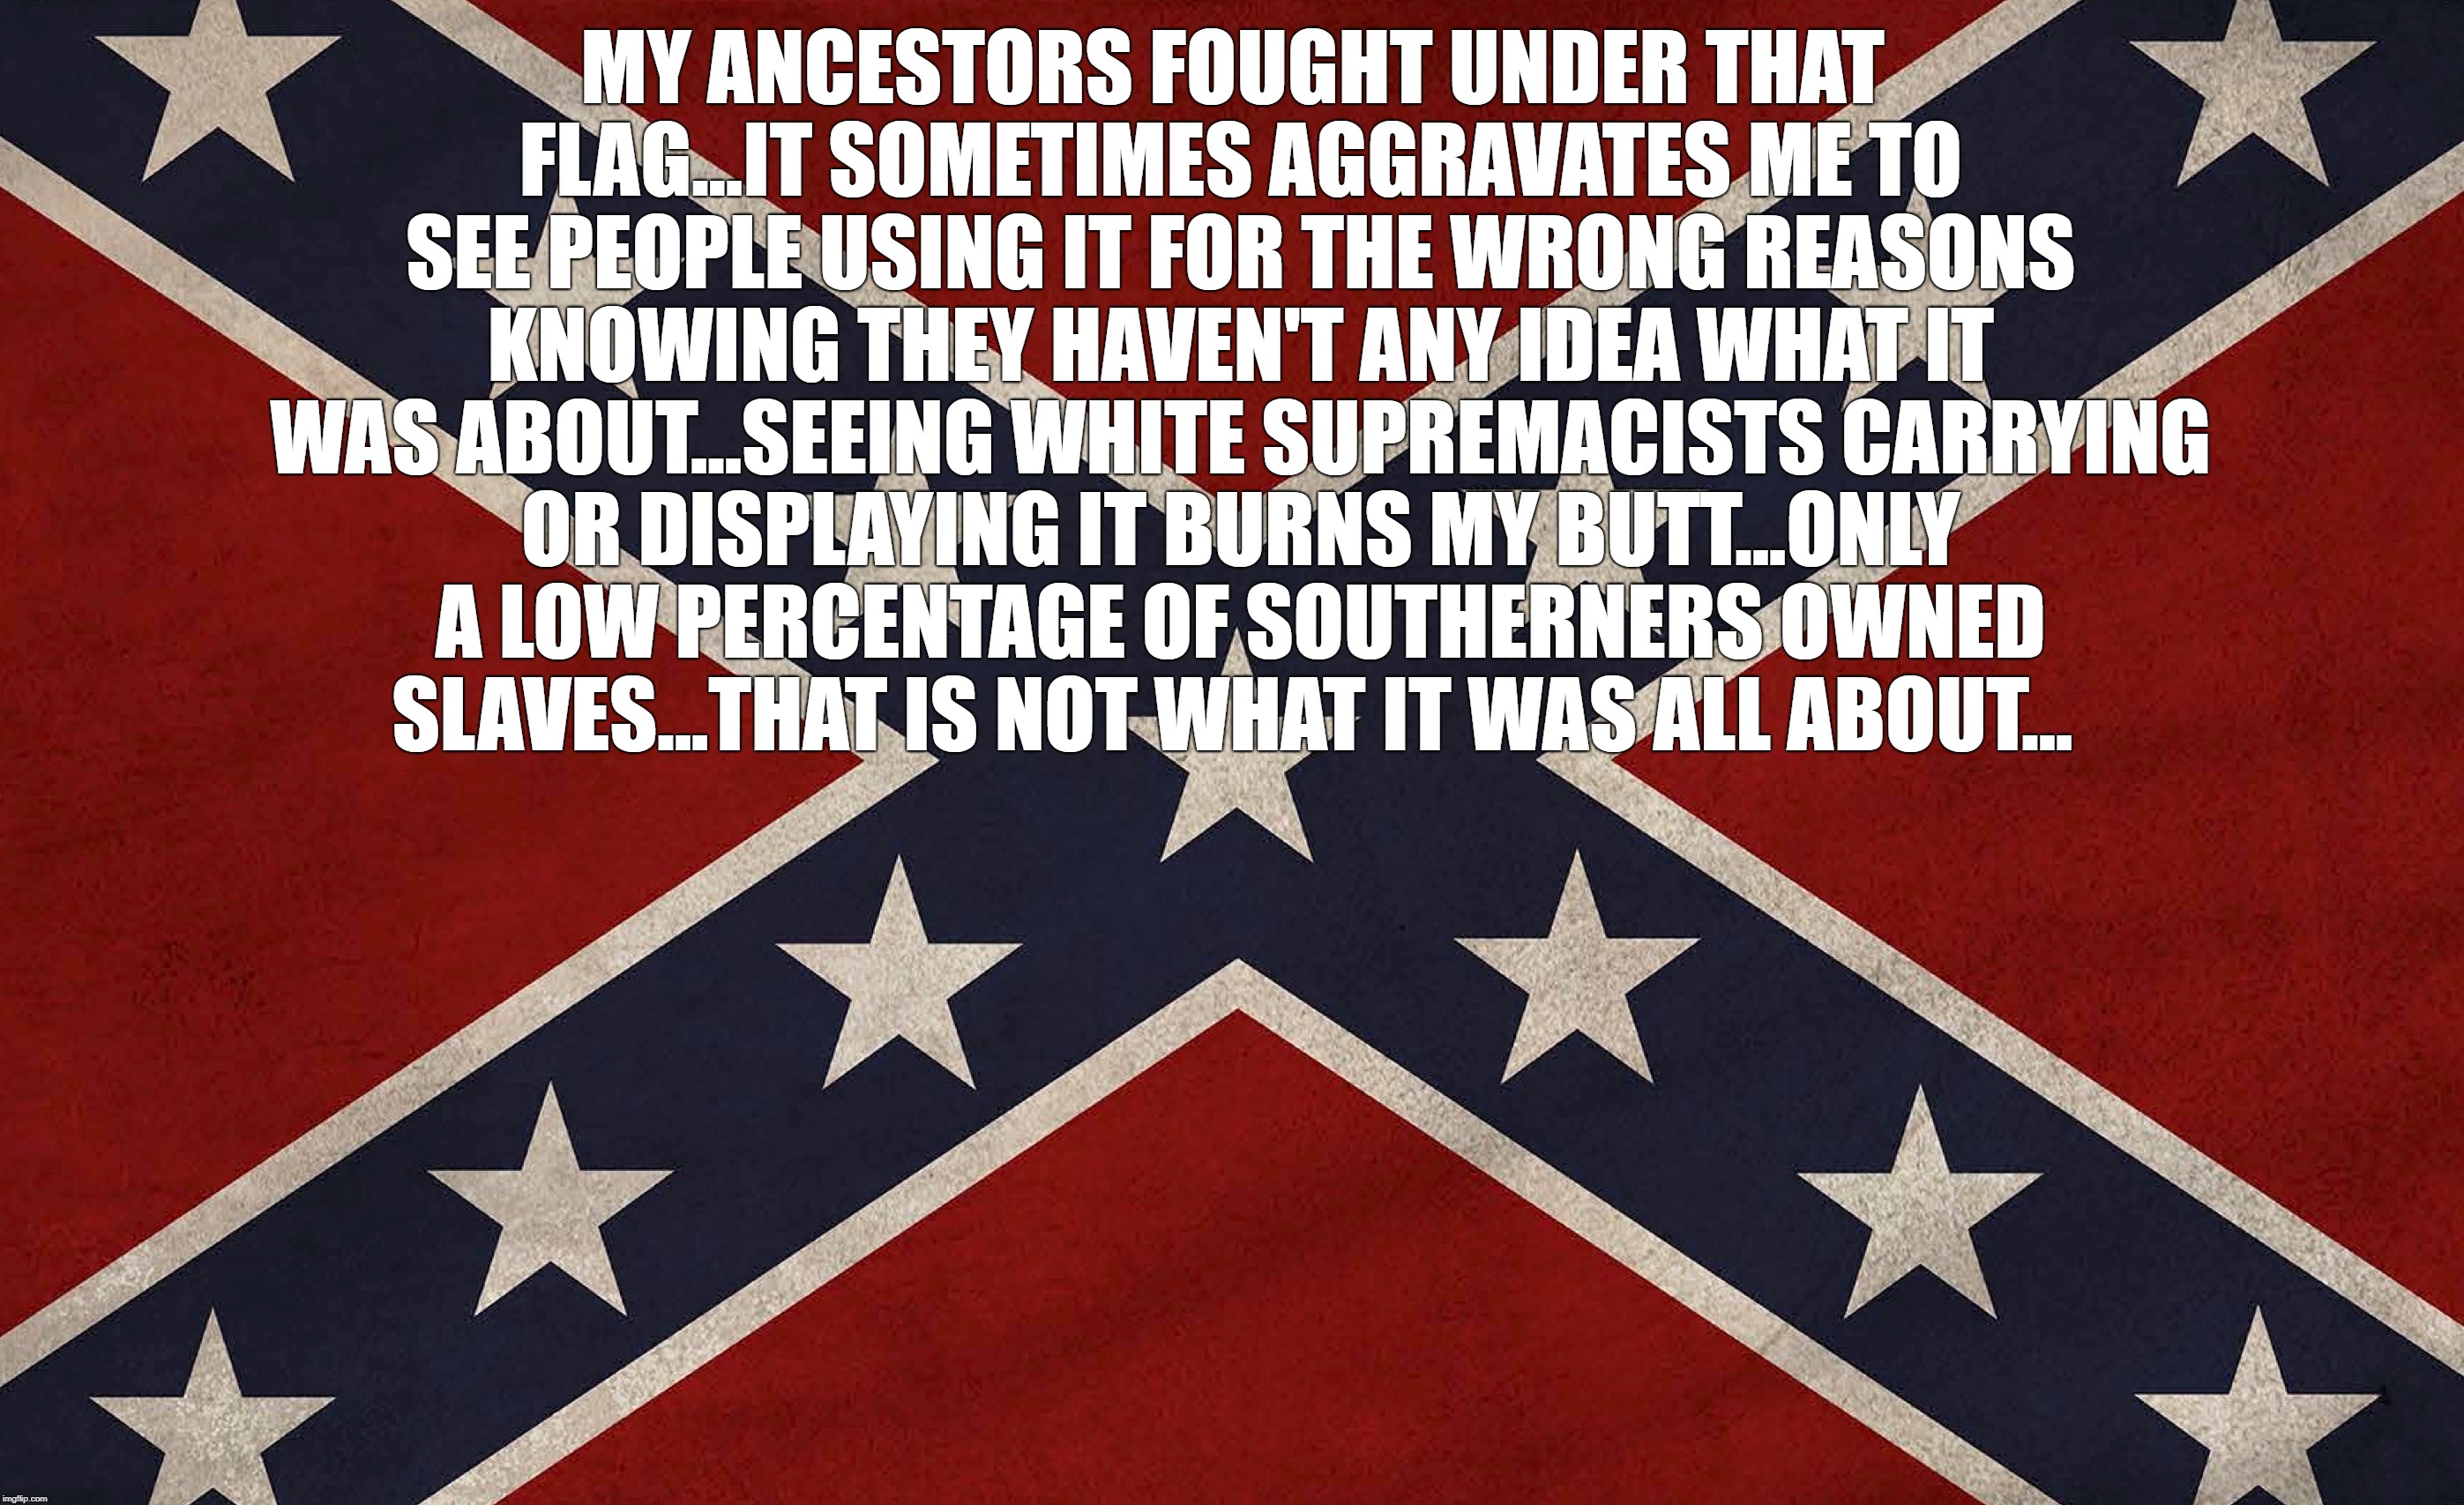 MY ANCESTORS FOUGHT UNDER THAT FLAG...IT SOMETIMES AGGRAVATES ME TO SEE PEOPLE USING IT FOR THE WRONG REASONS KNOWING THEY HAVEN'T ANY IDEA  | image tagged in confederacy | made w/ Imgflip meme maker